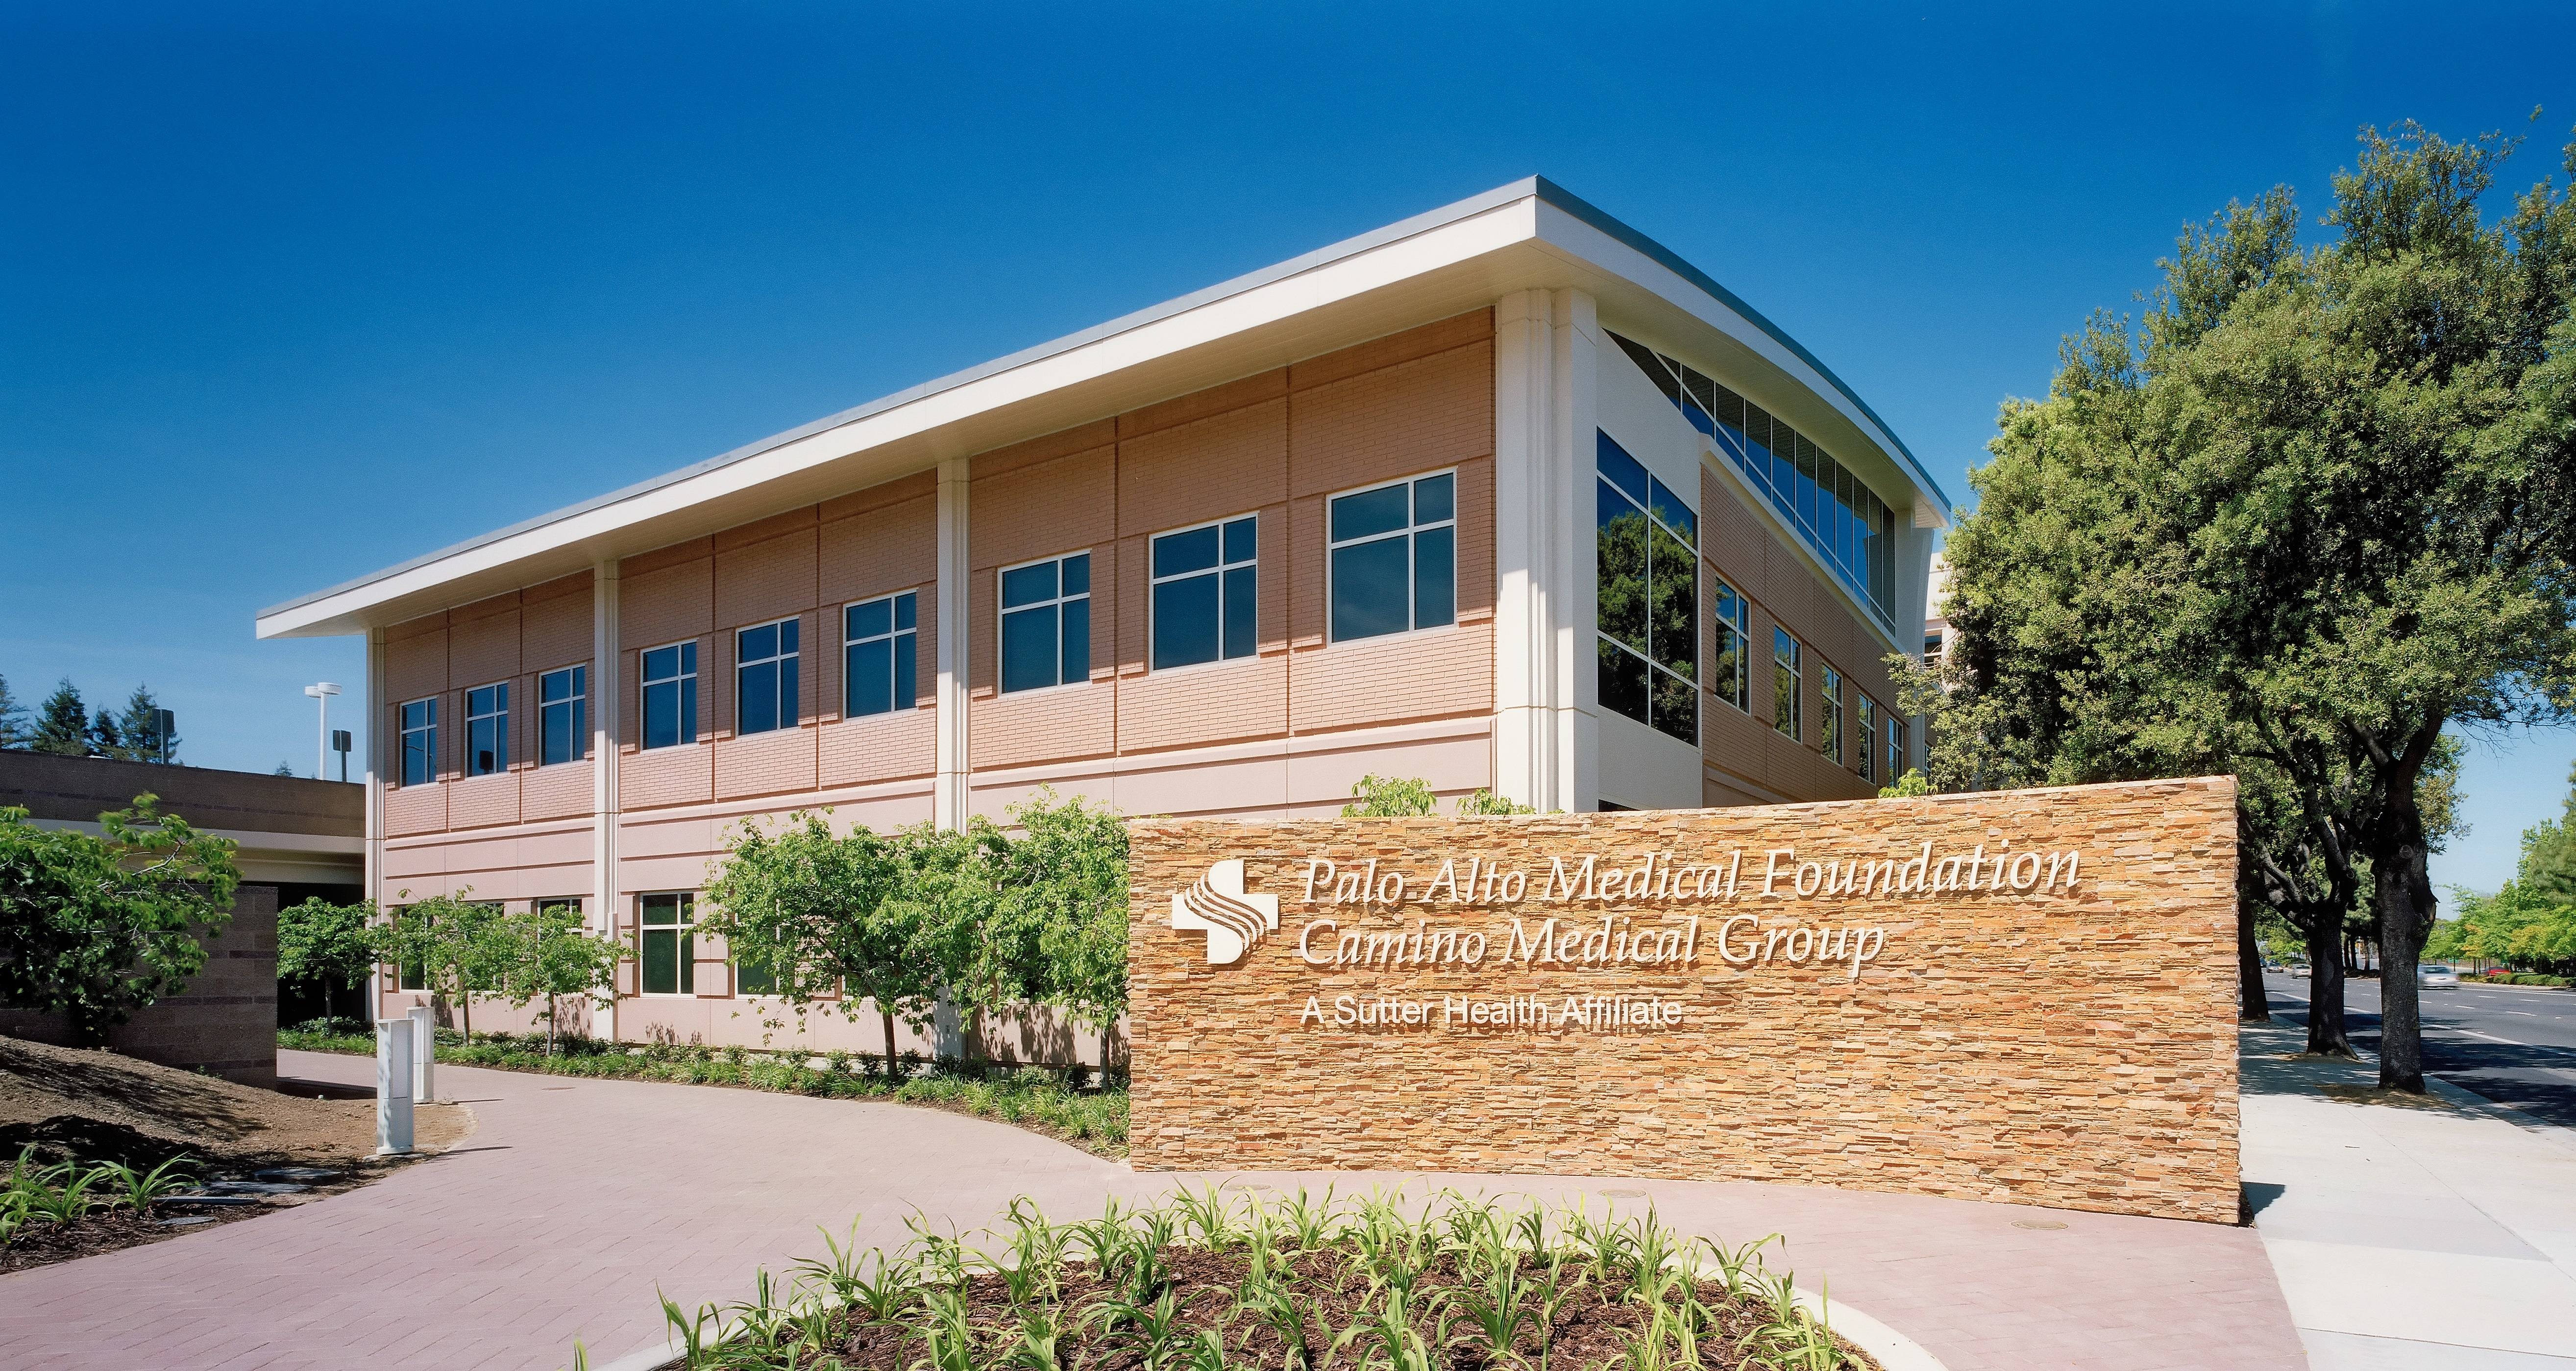 exterior photo Camino Medical Group office